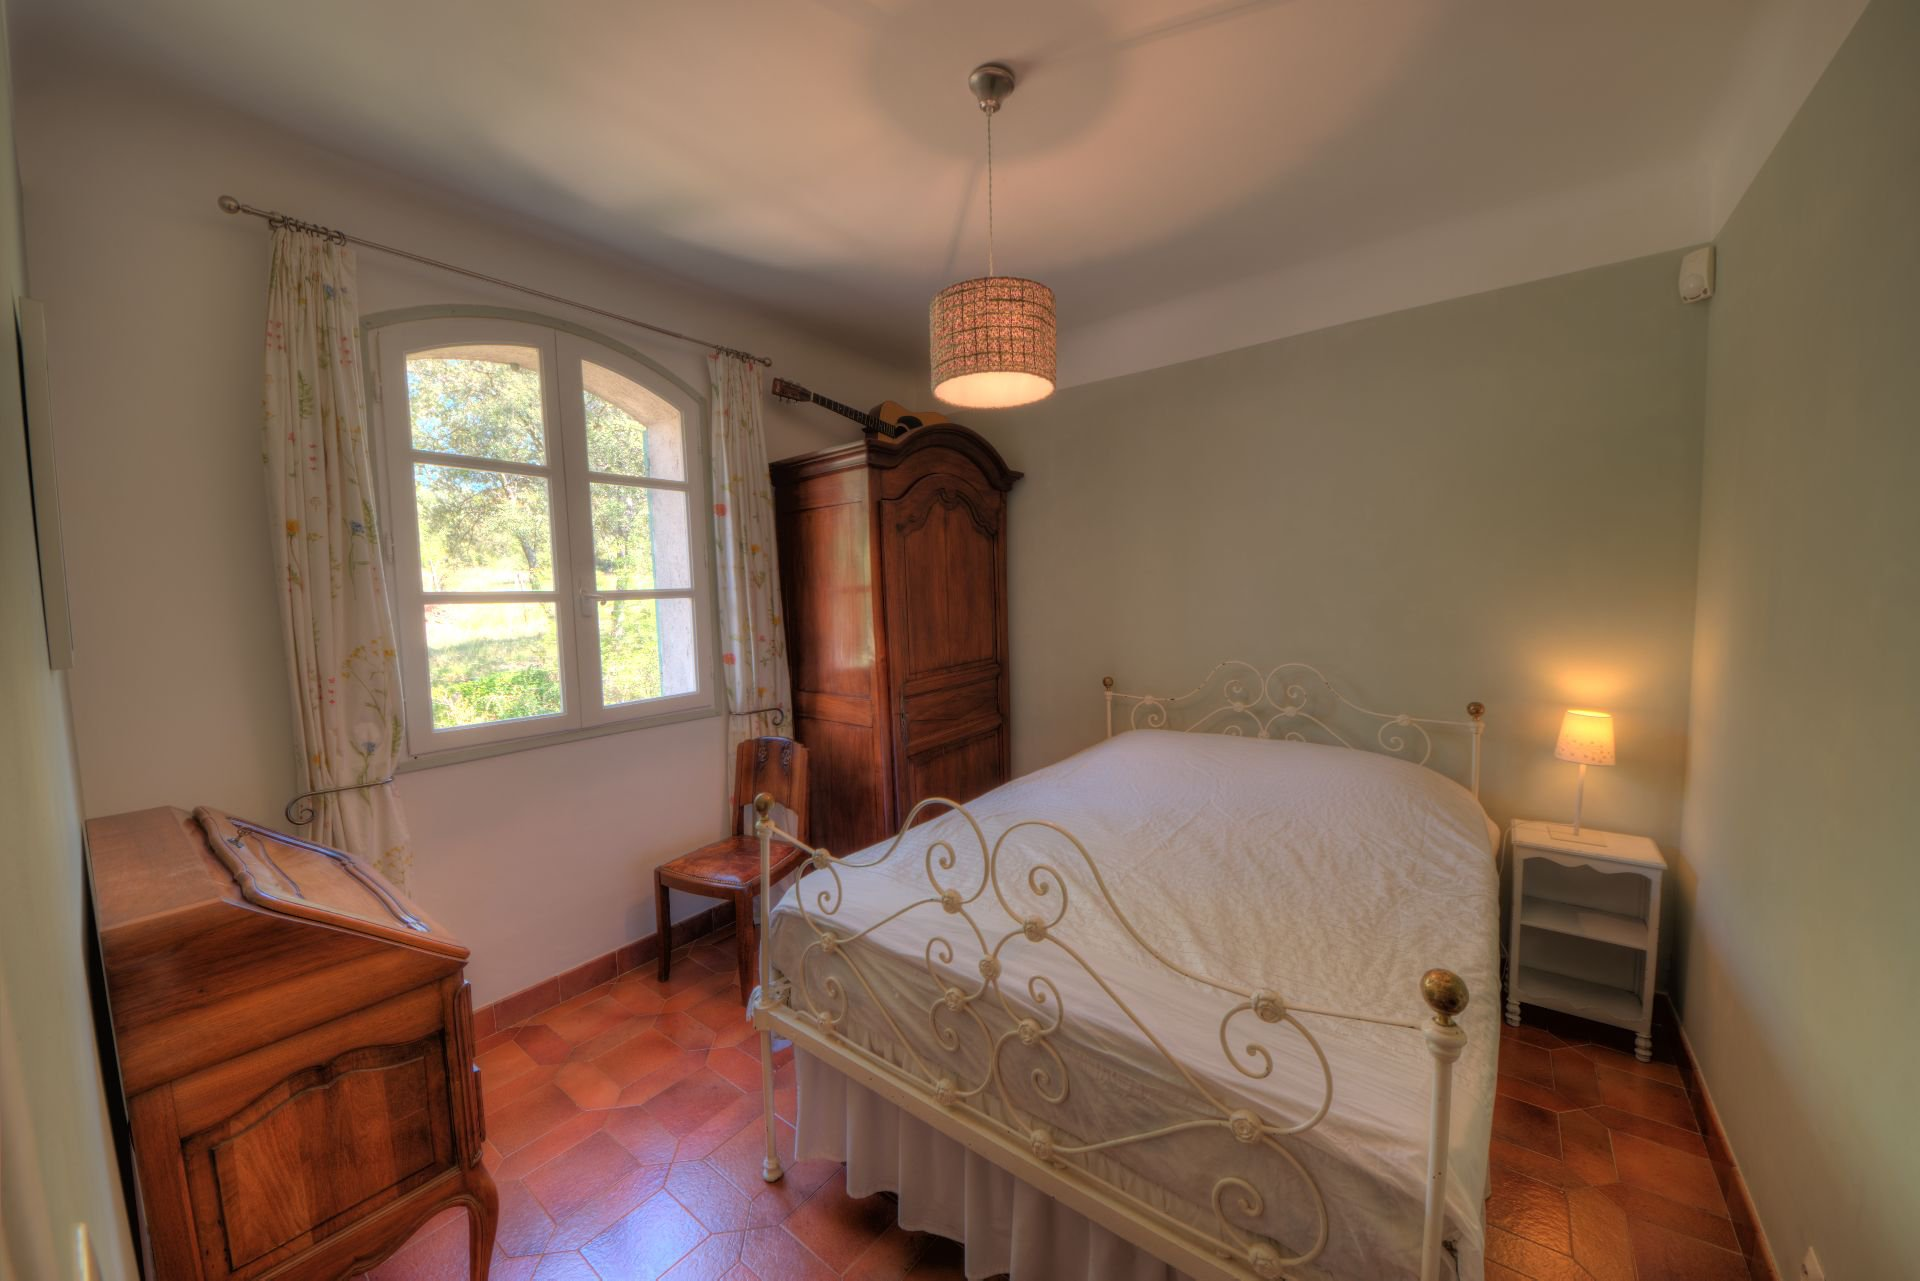 Bedroom 3 of the villa in the heart of the Thoronet